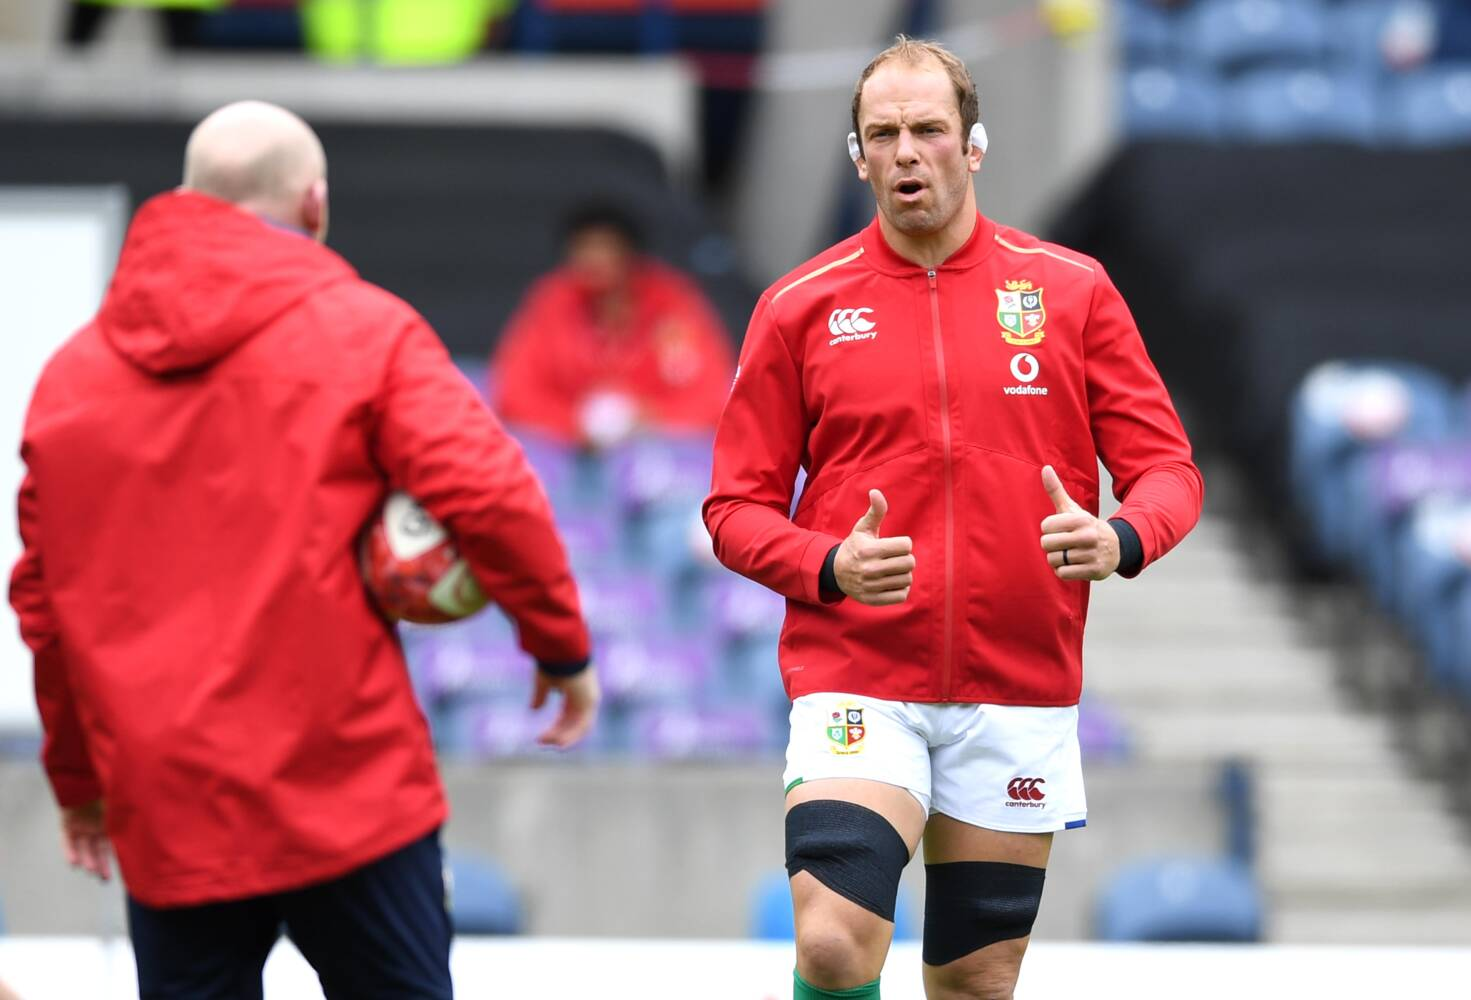 AWJ's Lions ready to make their own history